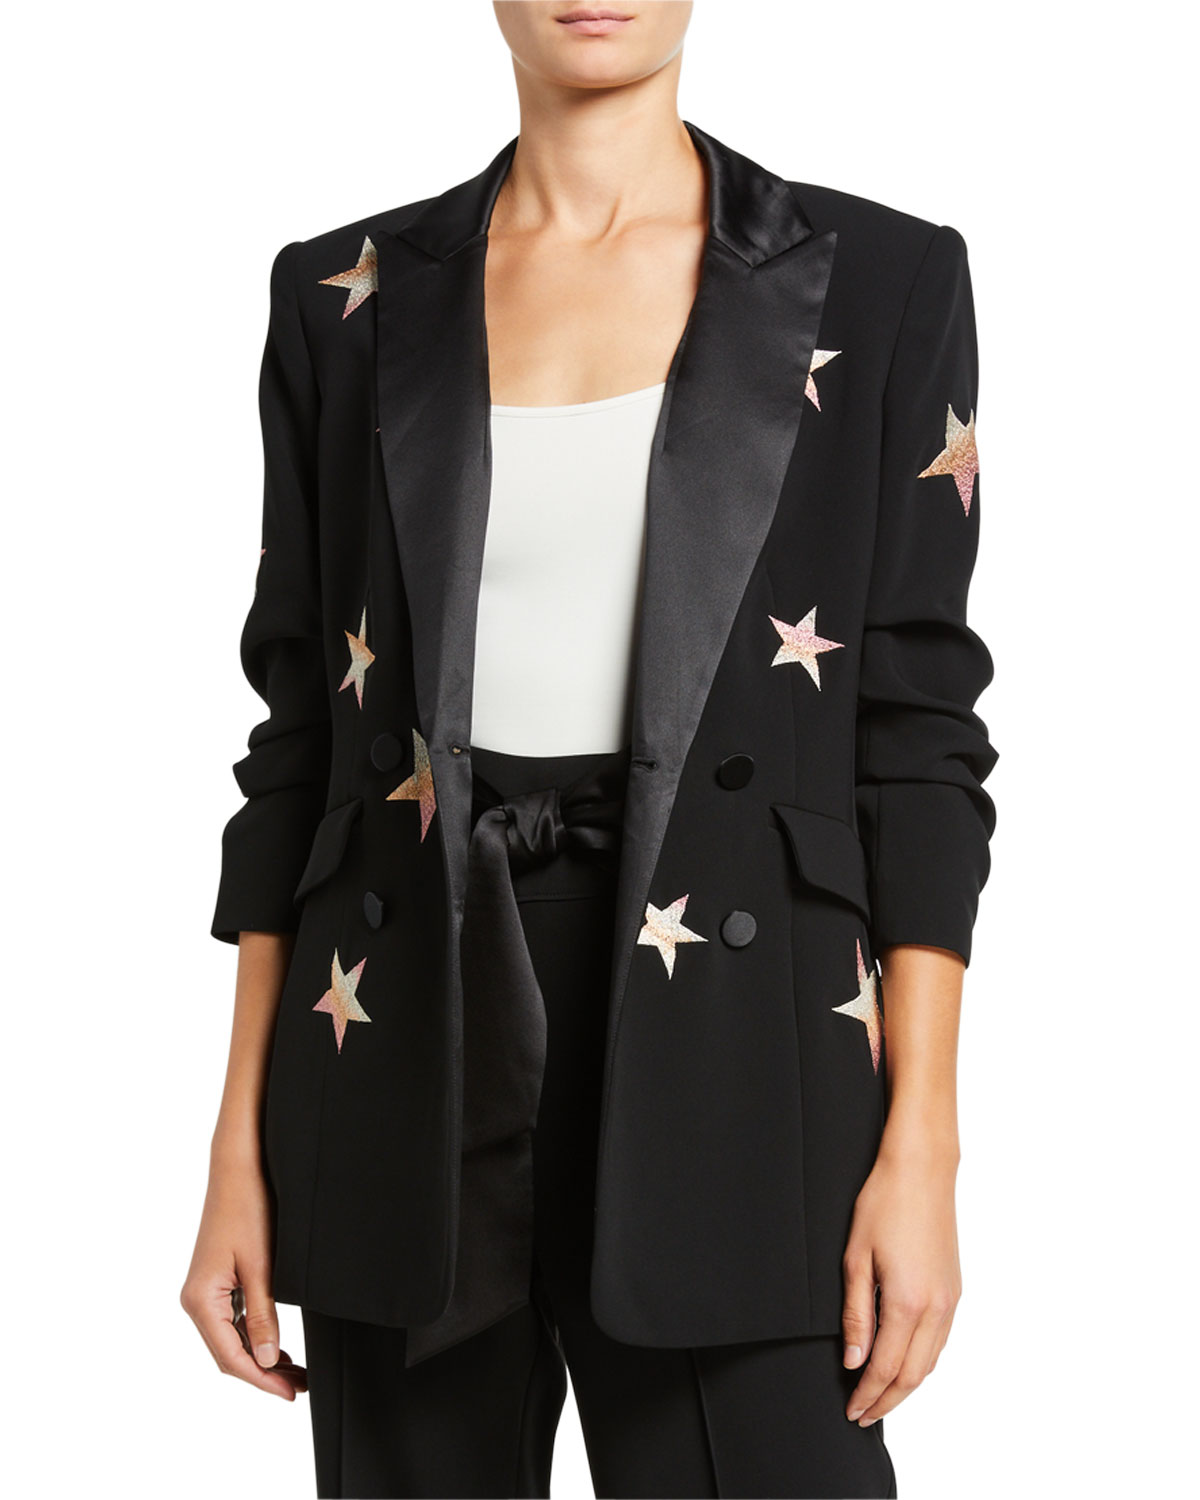 Cinq À Sept Blazers LILA EMBROIDERED STAR BLAZER